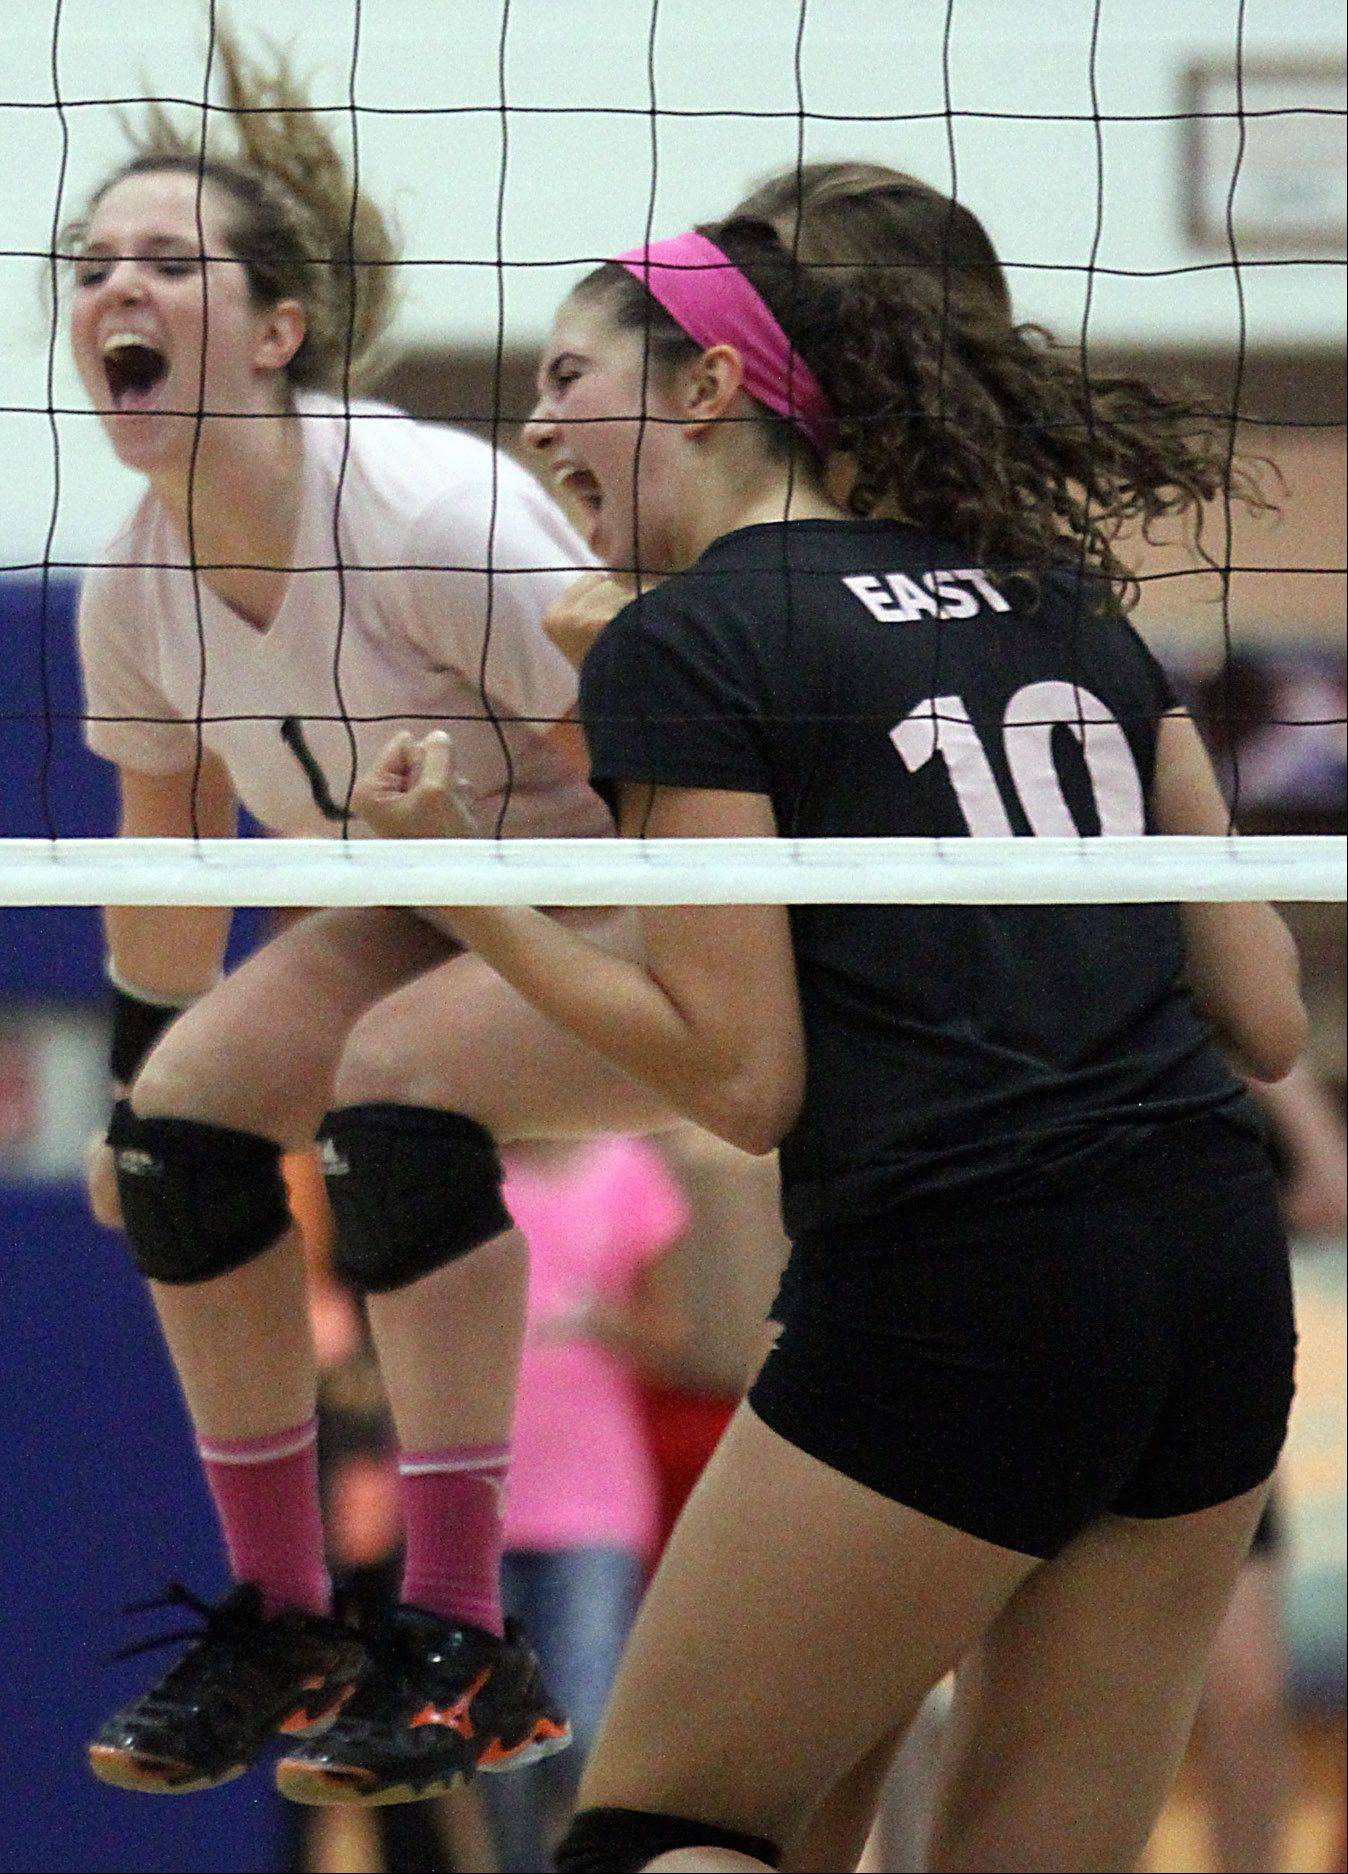 St. Charles East's Anne Hughes, left, and Mikaela Mosquera celebrate a point during a varsity volleyball game at St. Charles North on Tuesday evening.